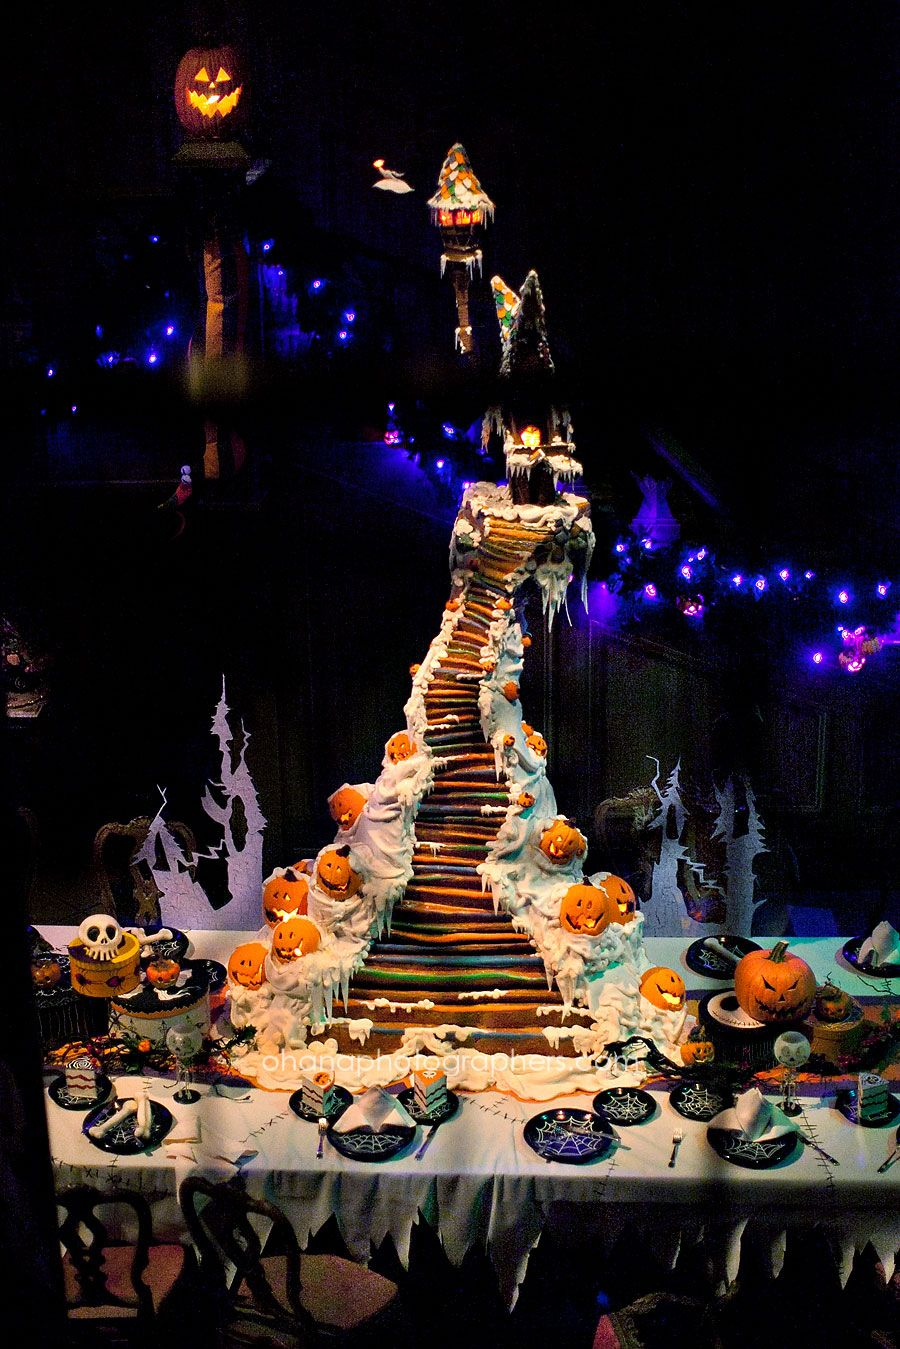 disneyland haunted mansion holiday gingerbread house 2017 nightmare before christmas haunted mansion holiday gingerbread house - Nightmare Before Christmas Gingerbread House